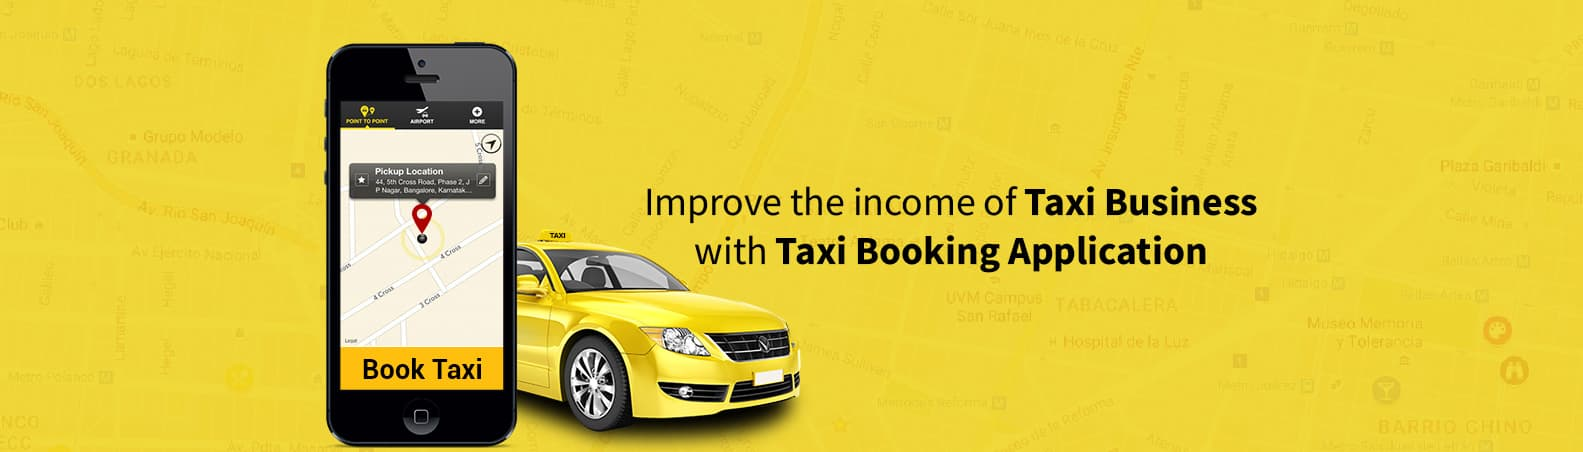 How to improve the income of Taxi Business with Taxi Booking Application?